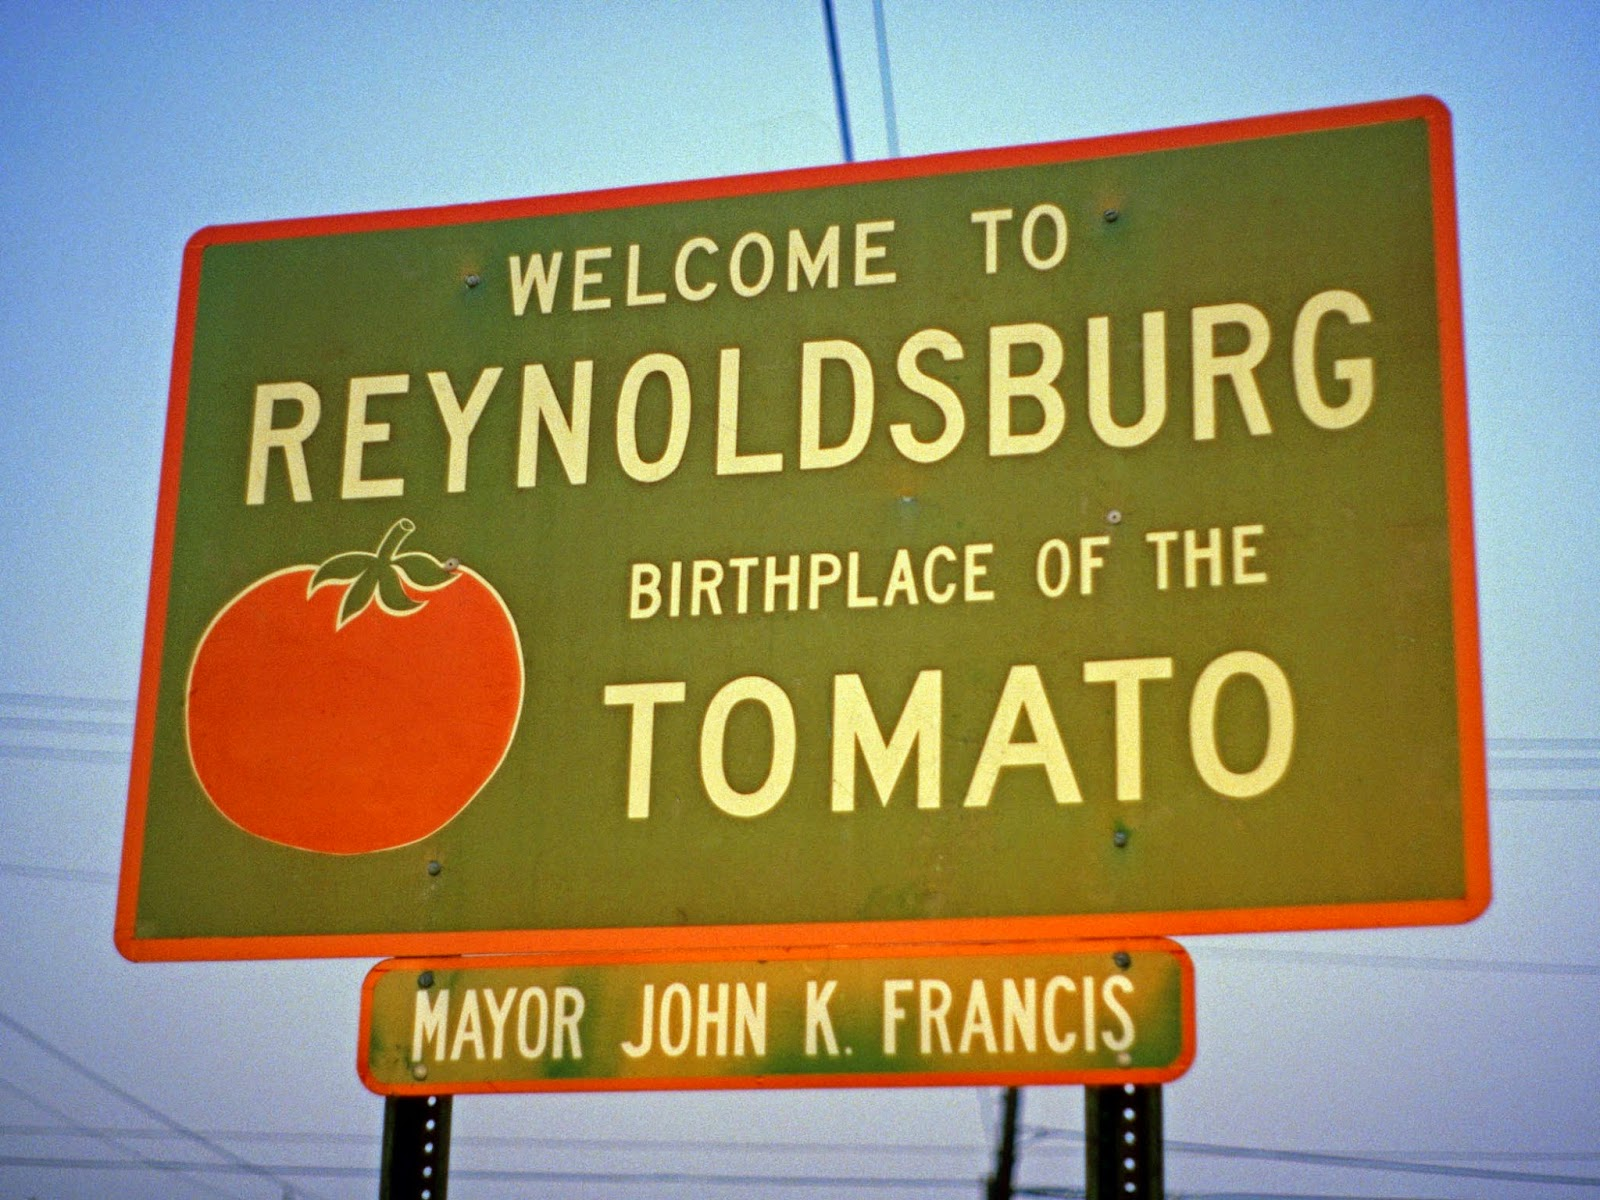 Sign saying 'Welcome to Reynoldsburg, Birthplace of the Tomato'